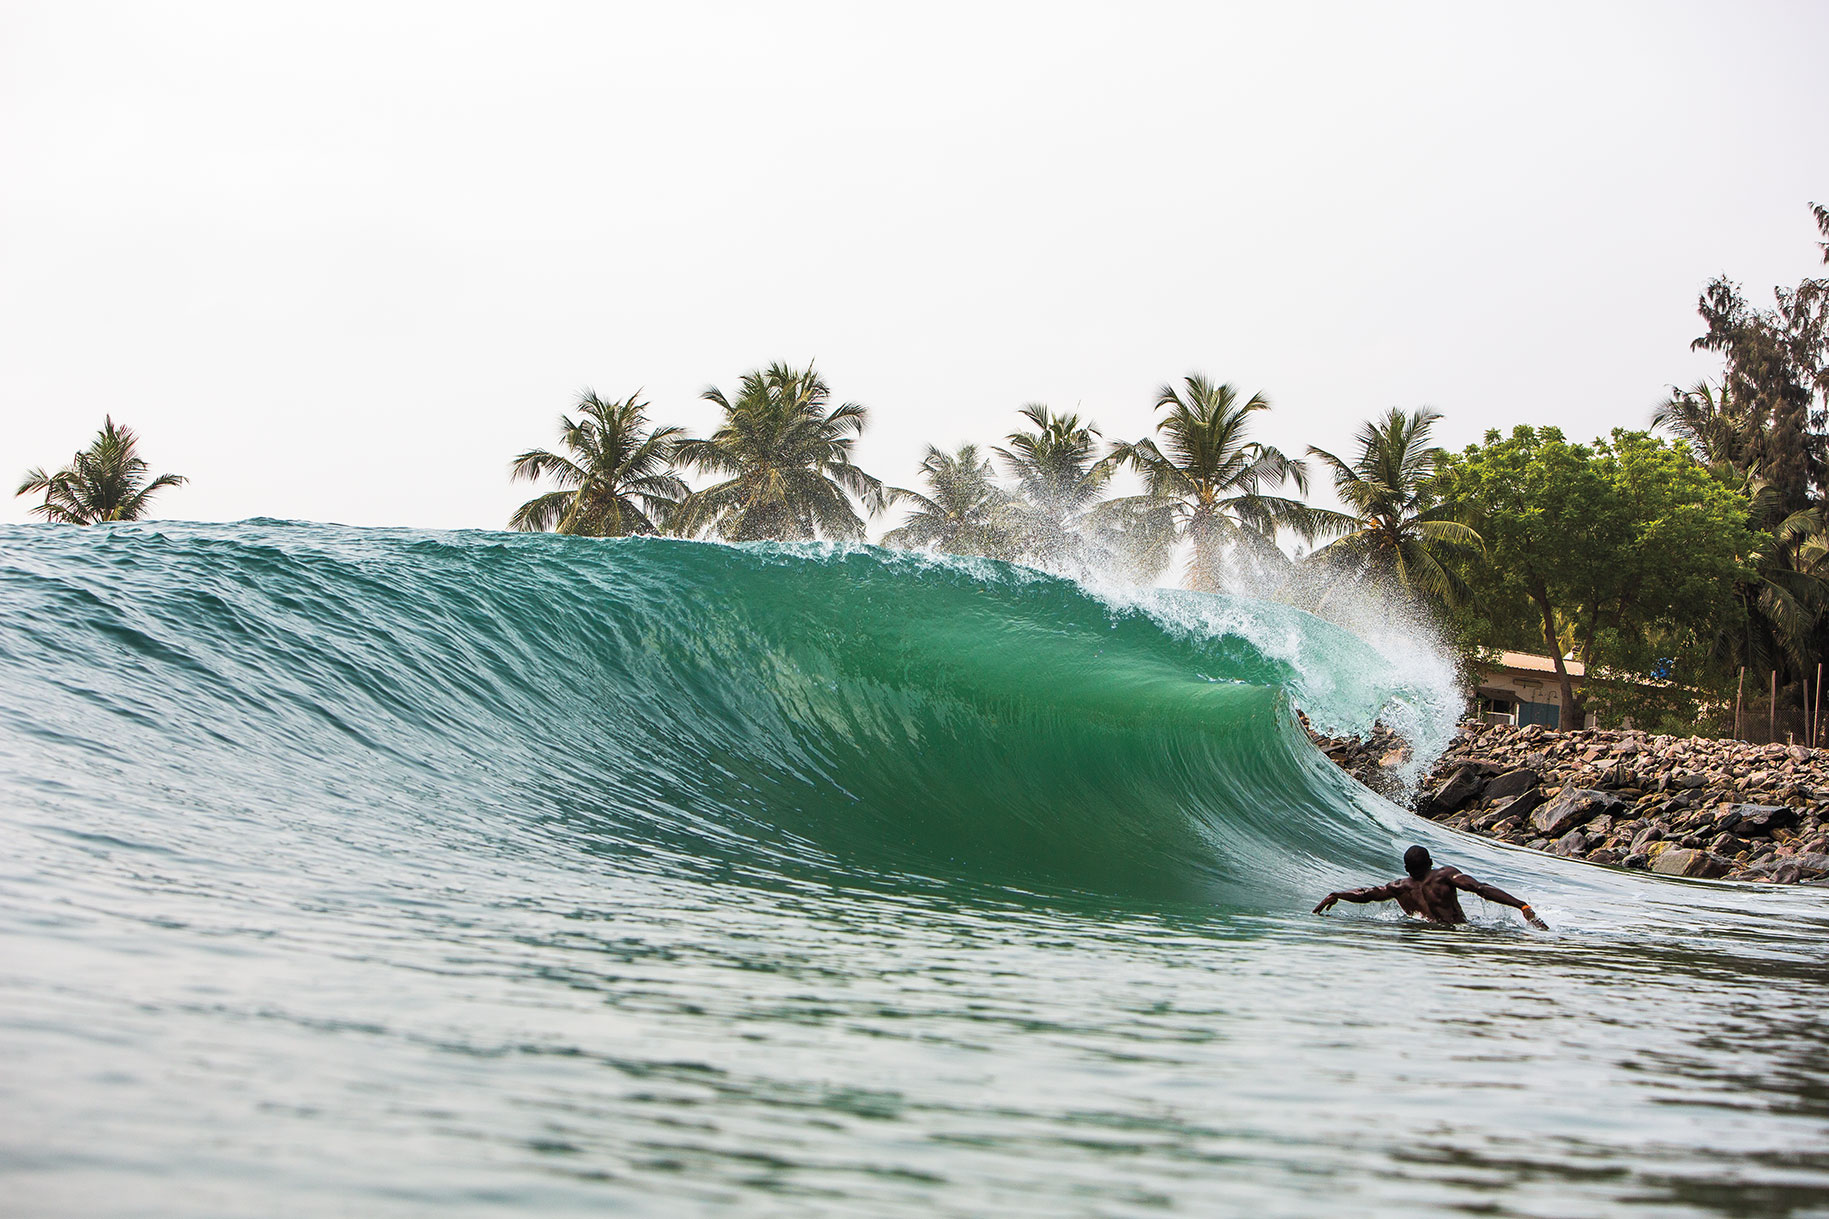 Tarkwa Bay Surfers Displaced After Nigerian Navy Demolished Their Homes -  SURFER Magazine